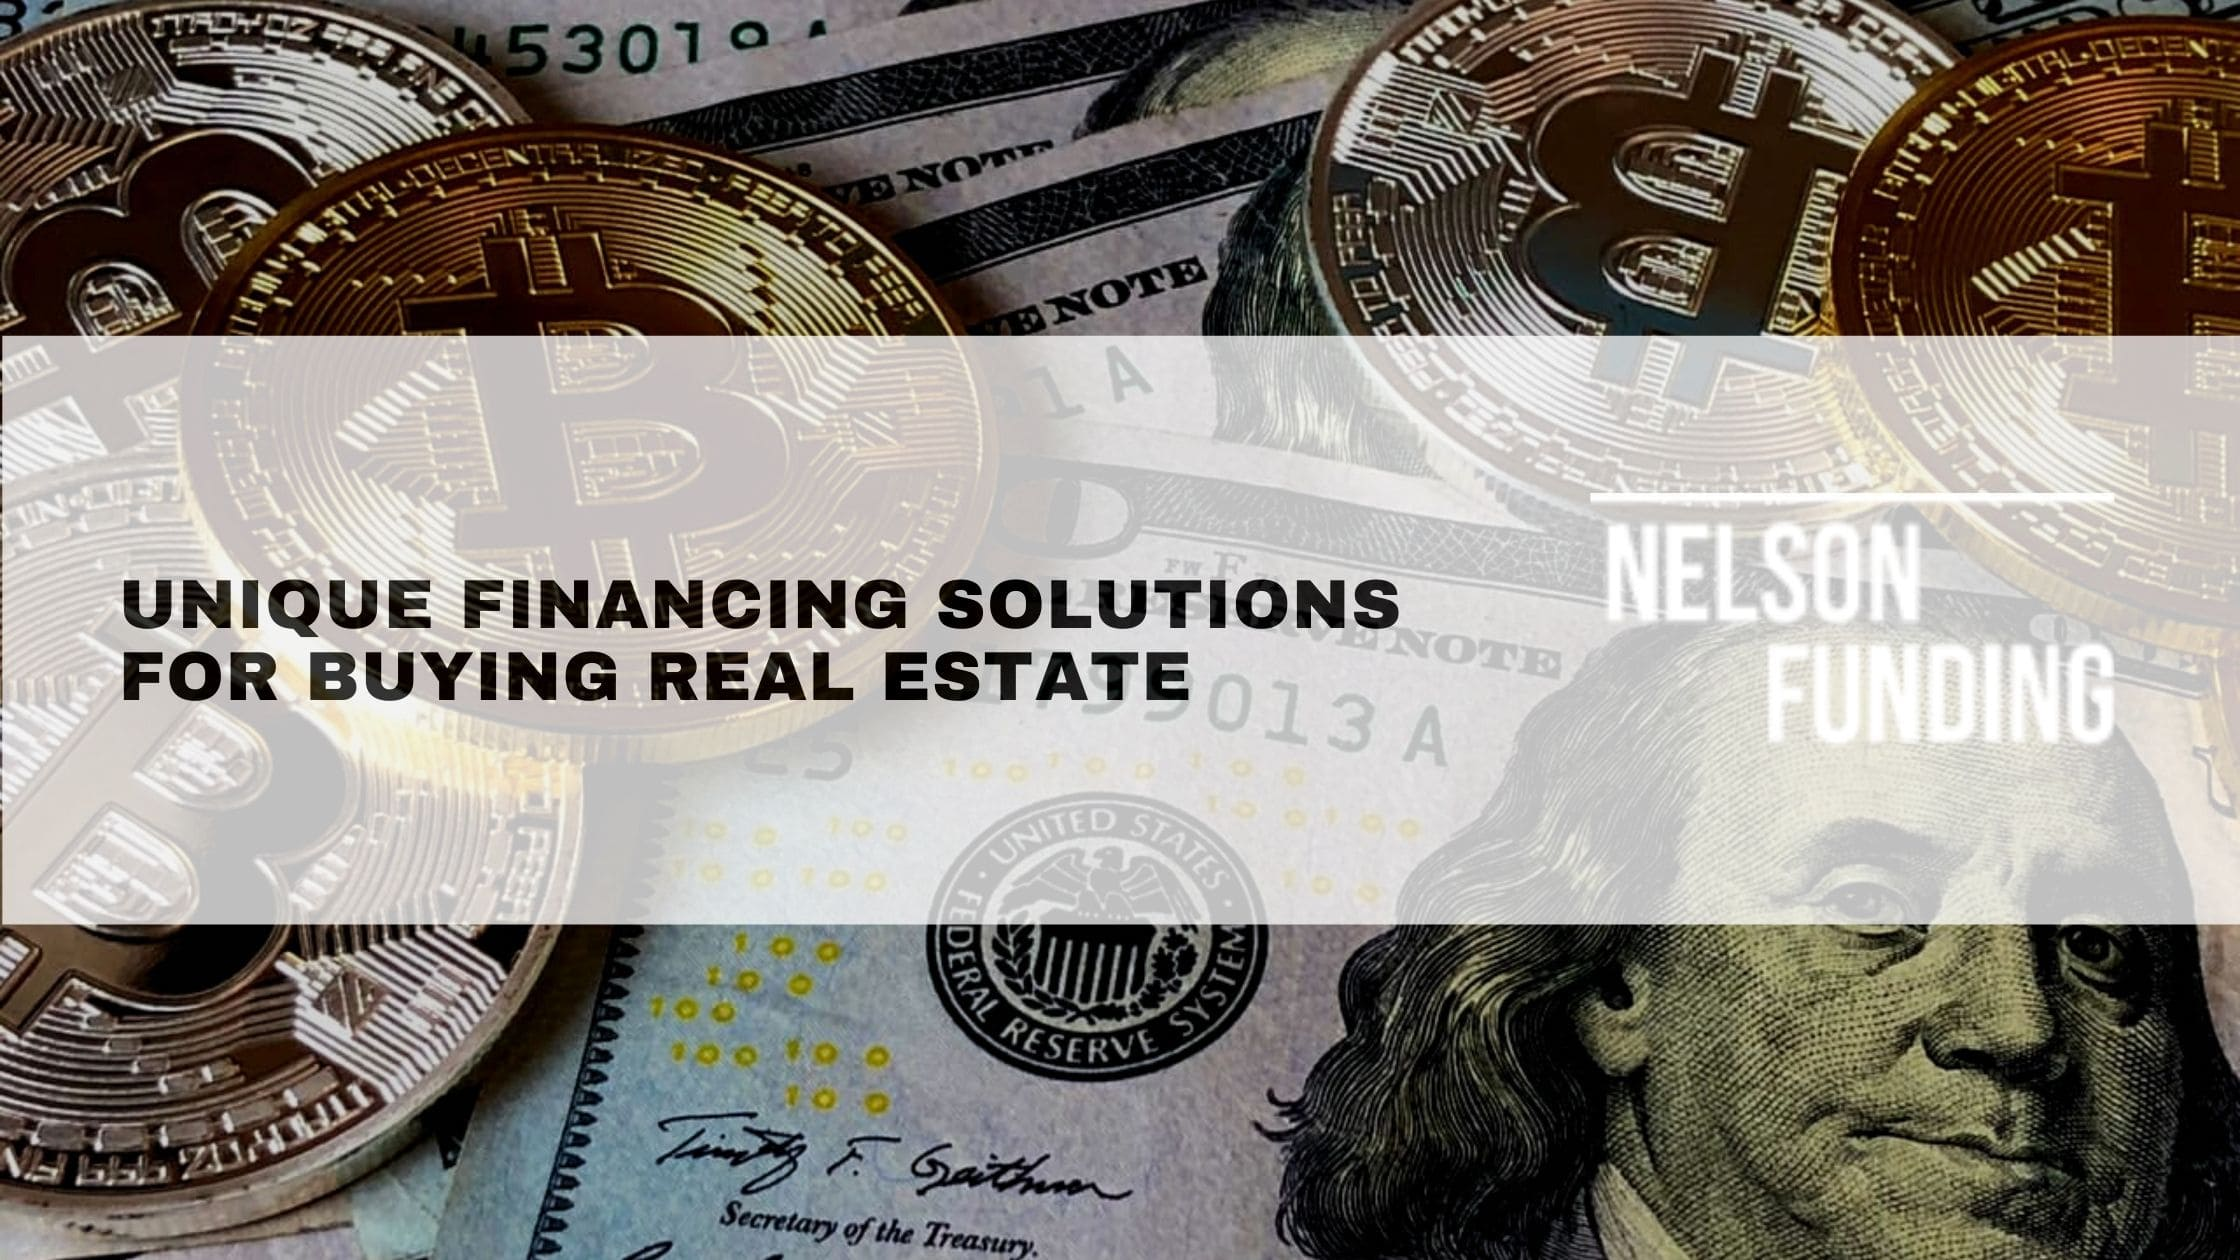 Unique Financing Solutions for Buying Real Estate